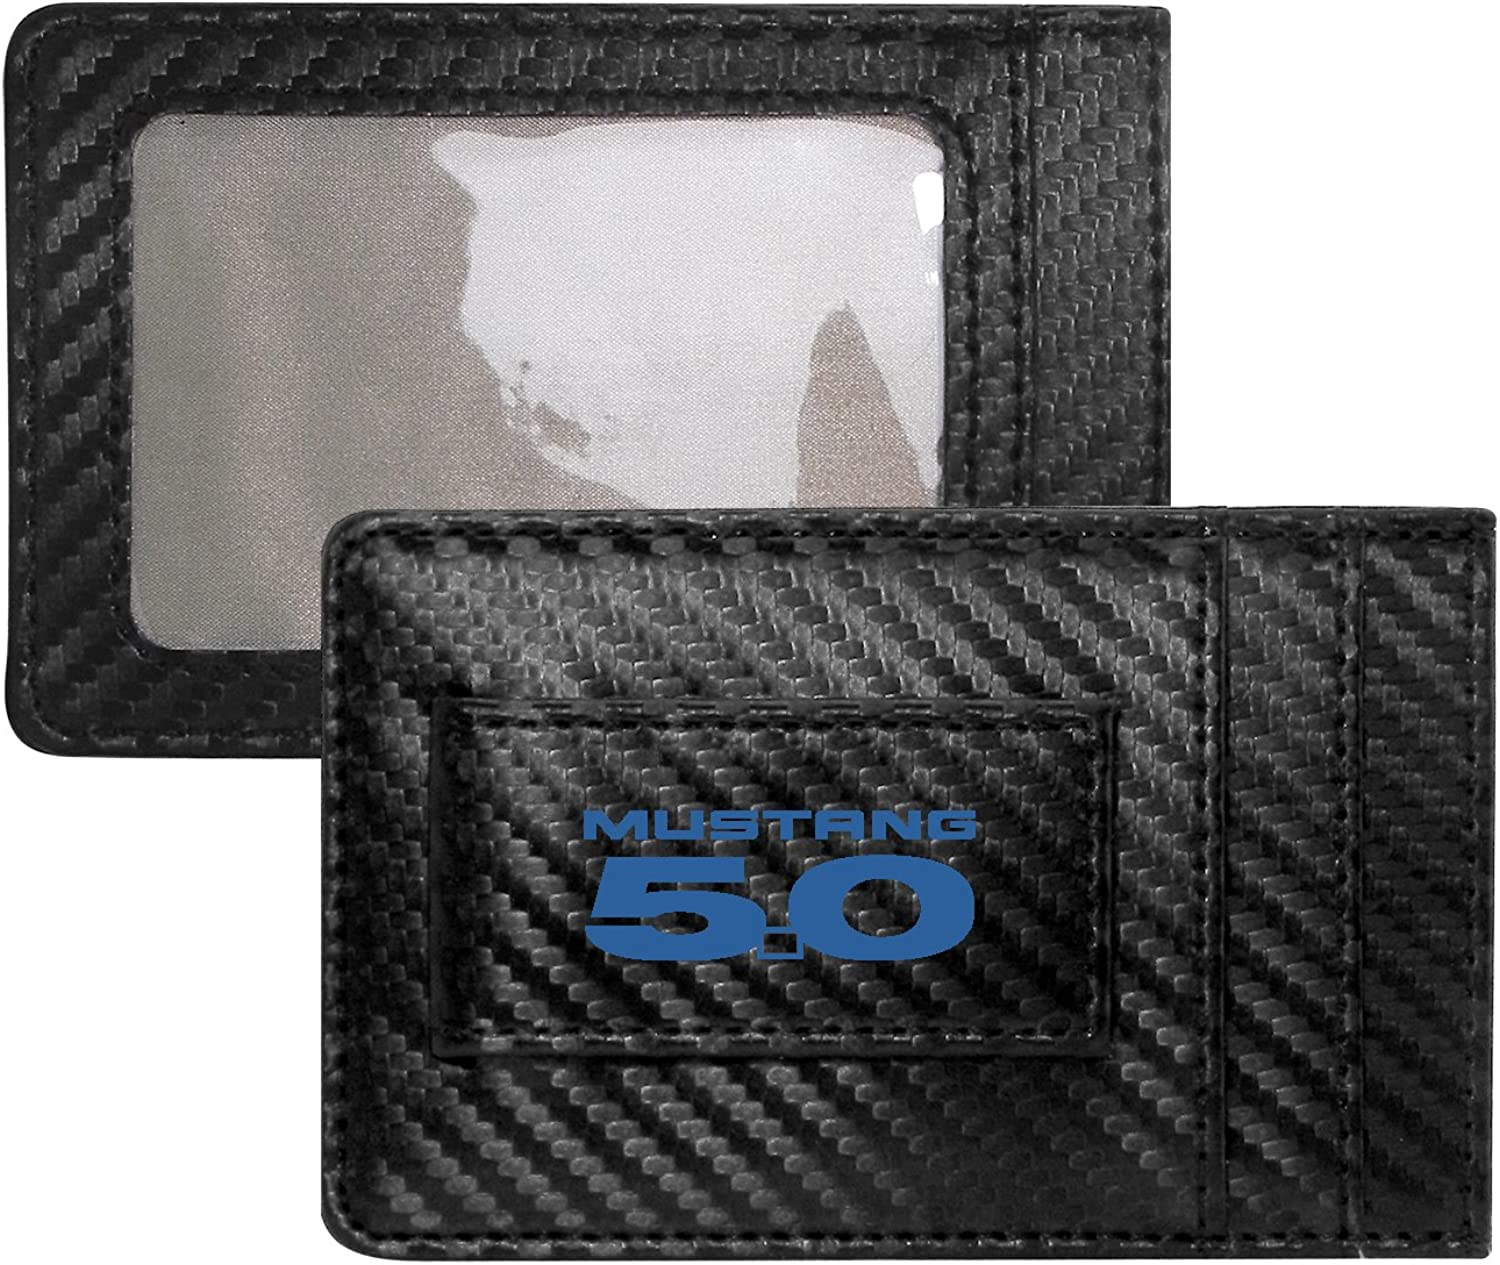 Ford Mustang 5.0 in Blue Black Carbon Fiber Leather Wallet RFID Block Card Case Money Clip